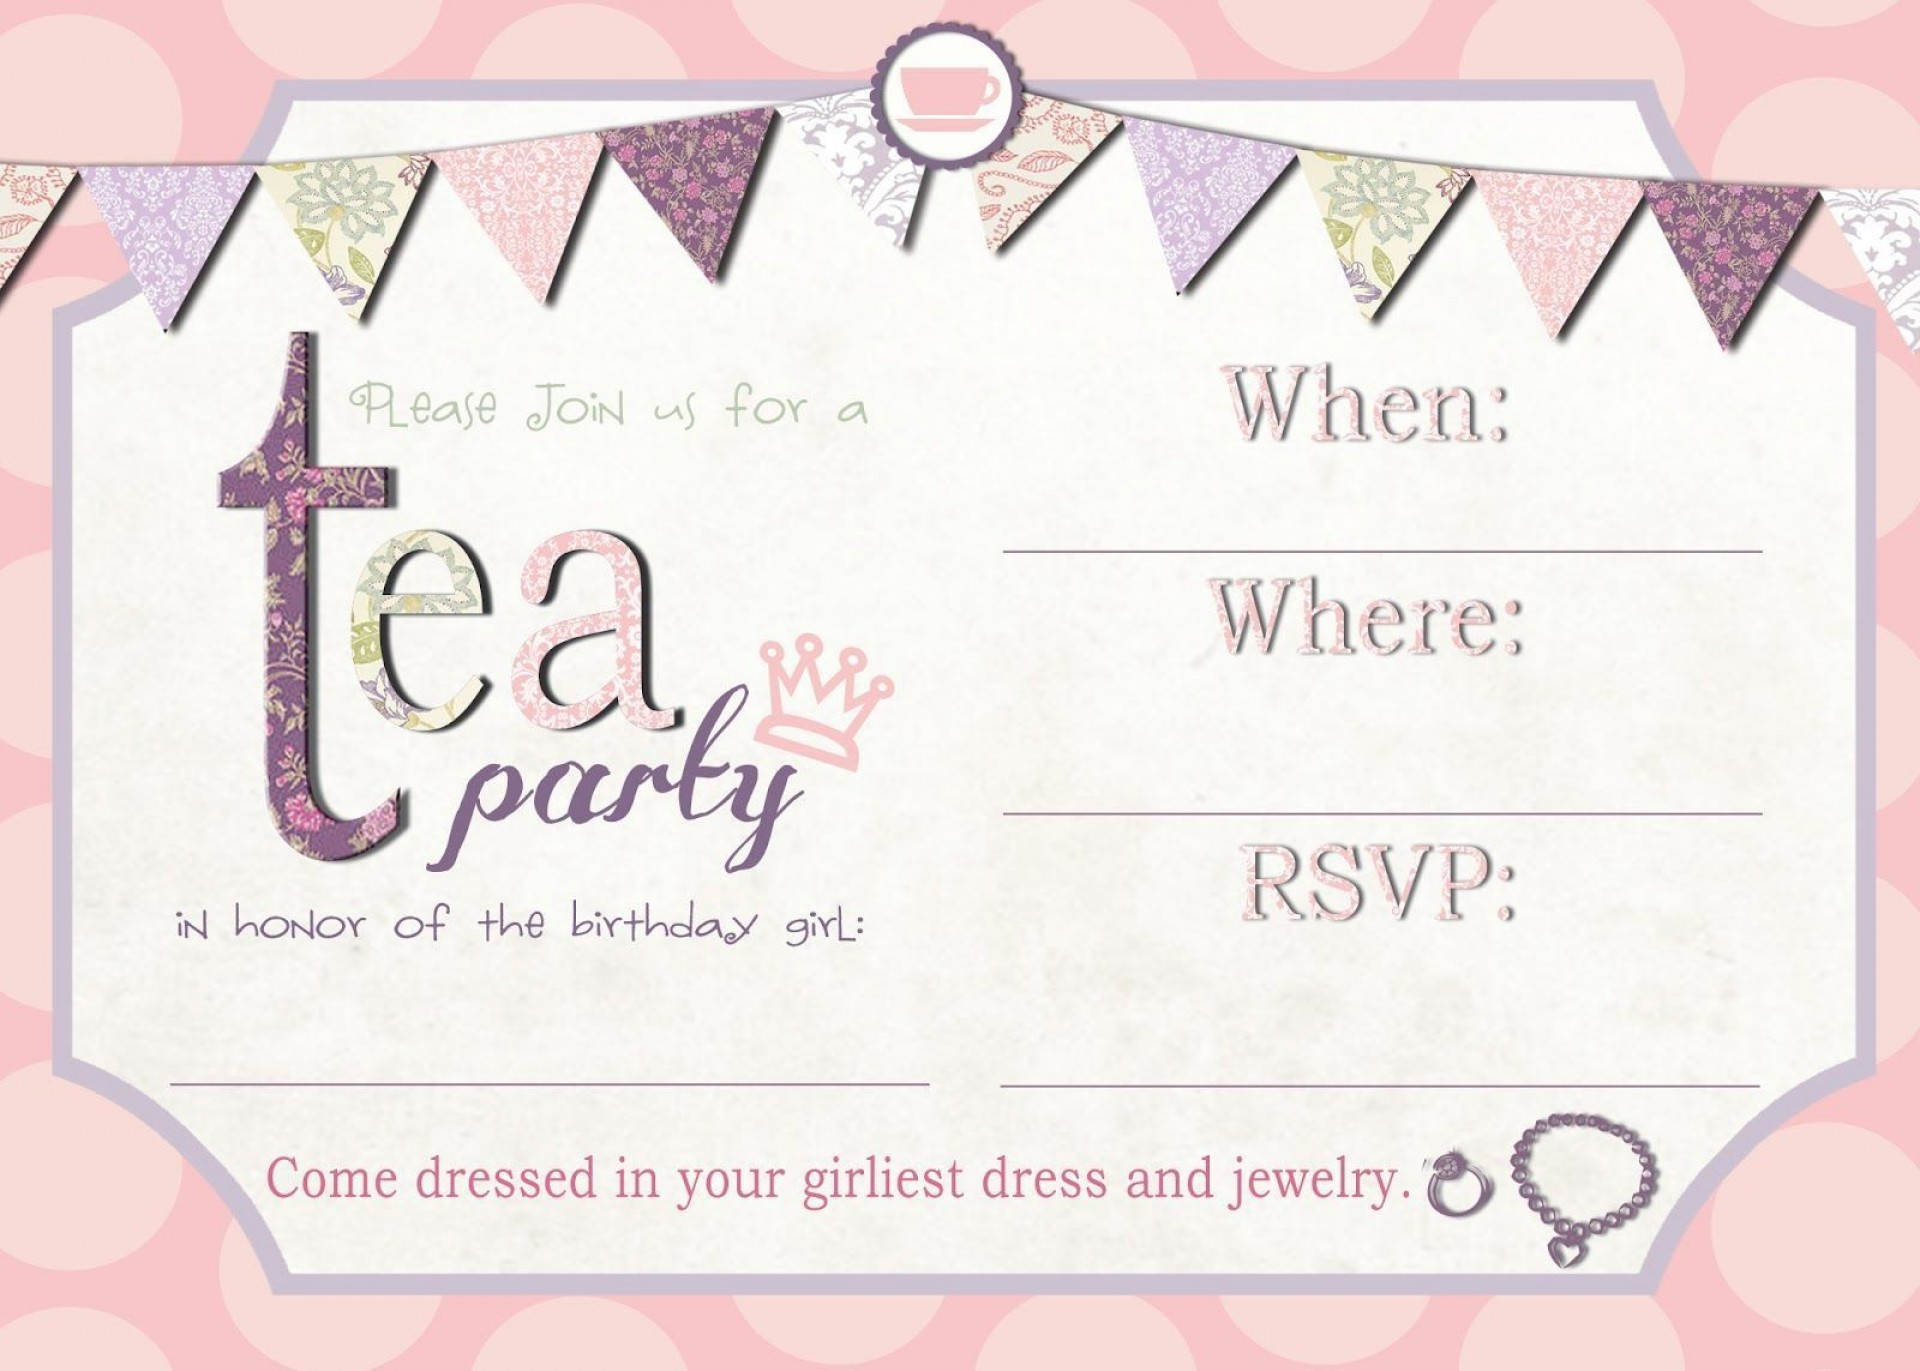 001 Awful Tea Party Invitation Template High Definition  Vintage Free Editable Card Pdf1920